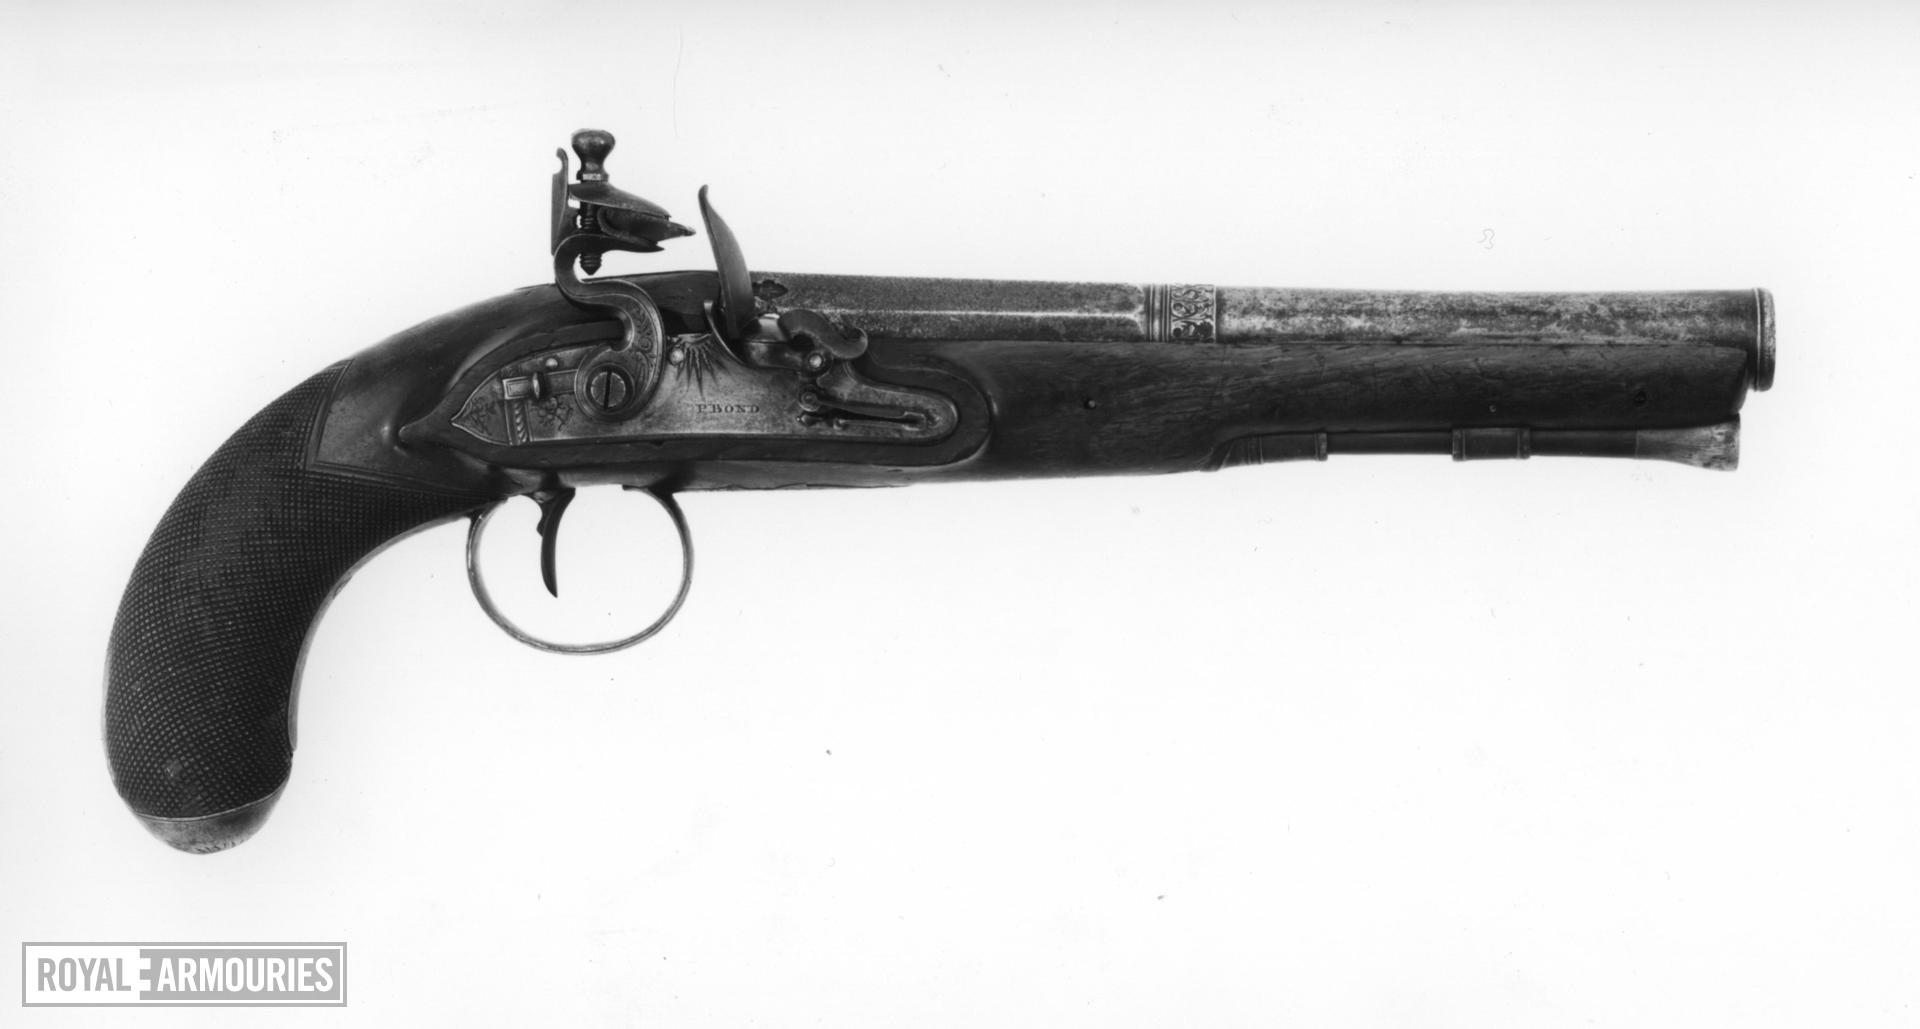 Flintlock pistol By a member of the Bustindui family Lock by P. Bond